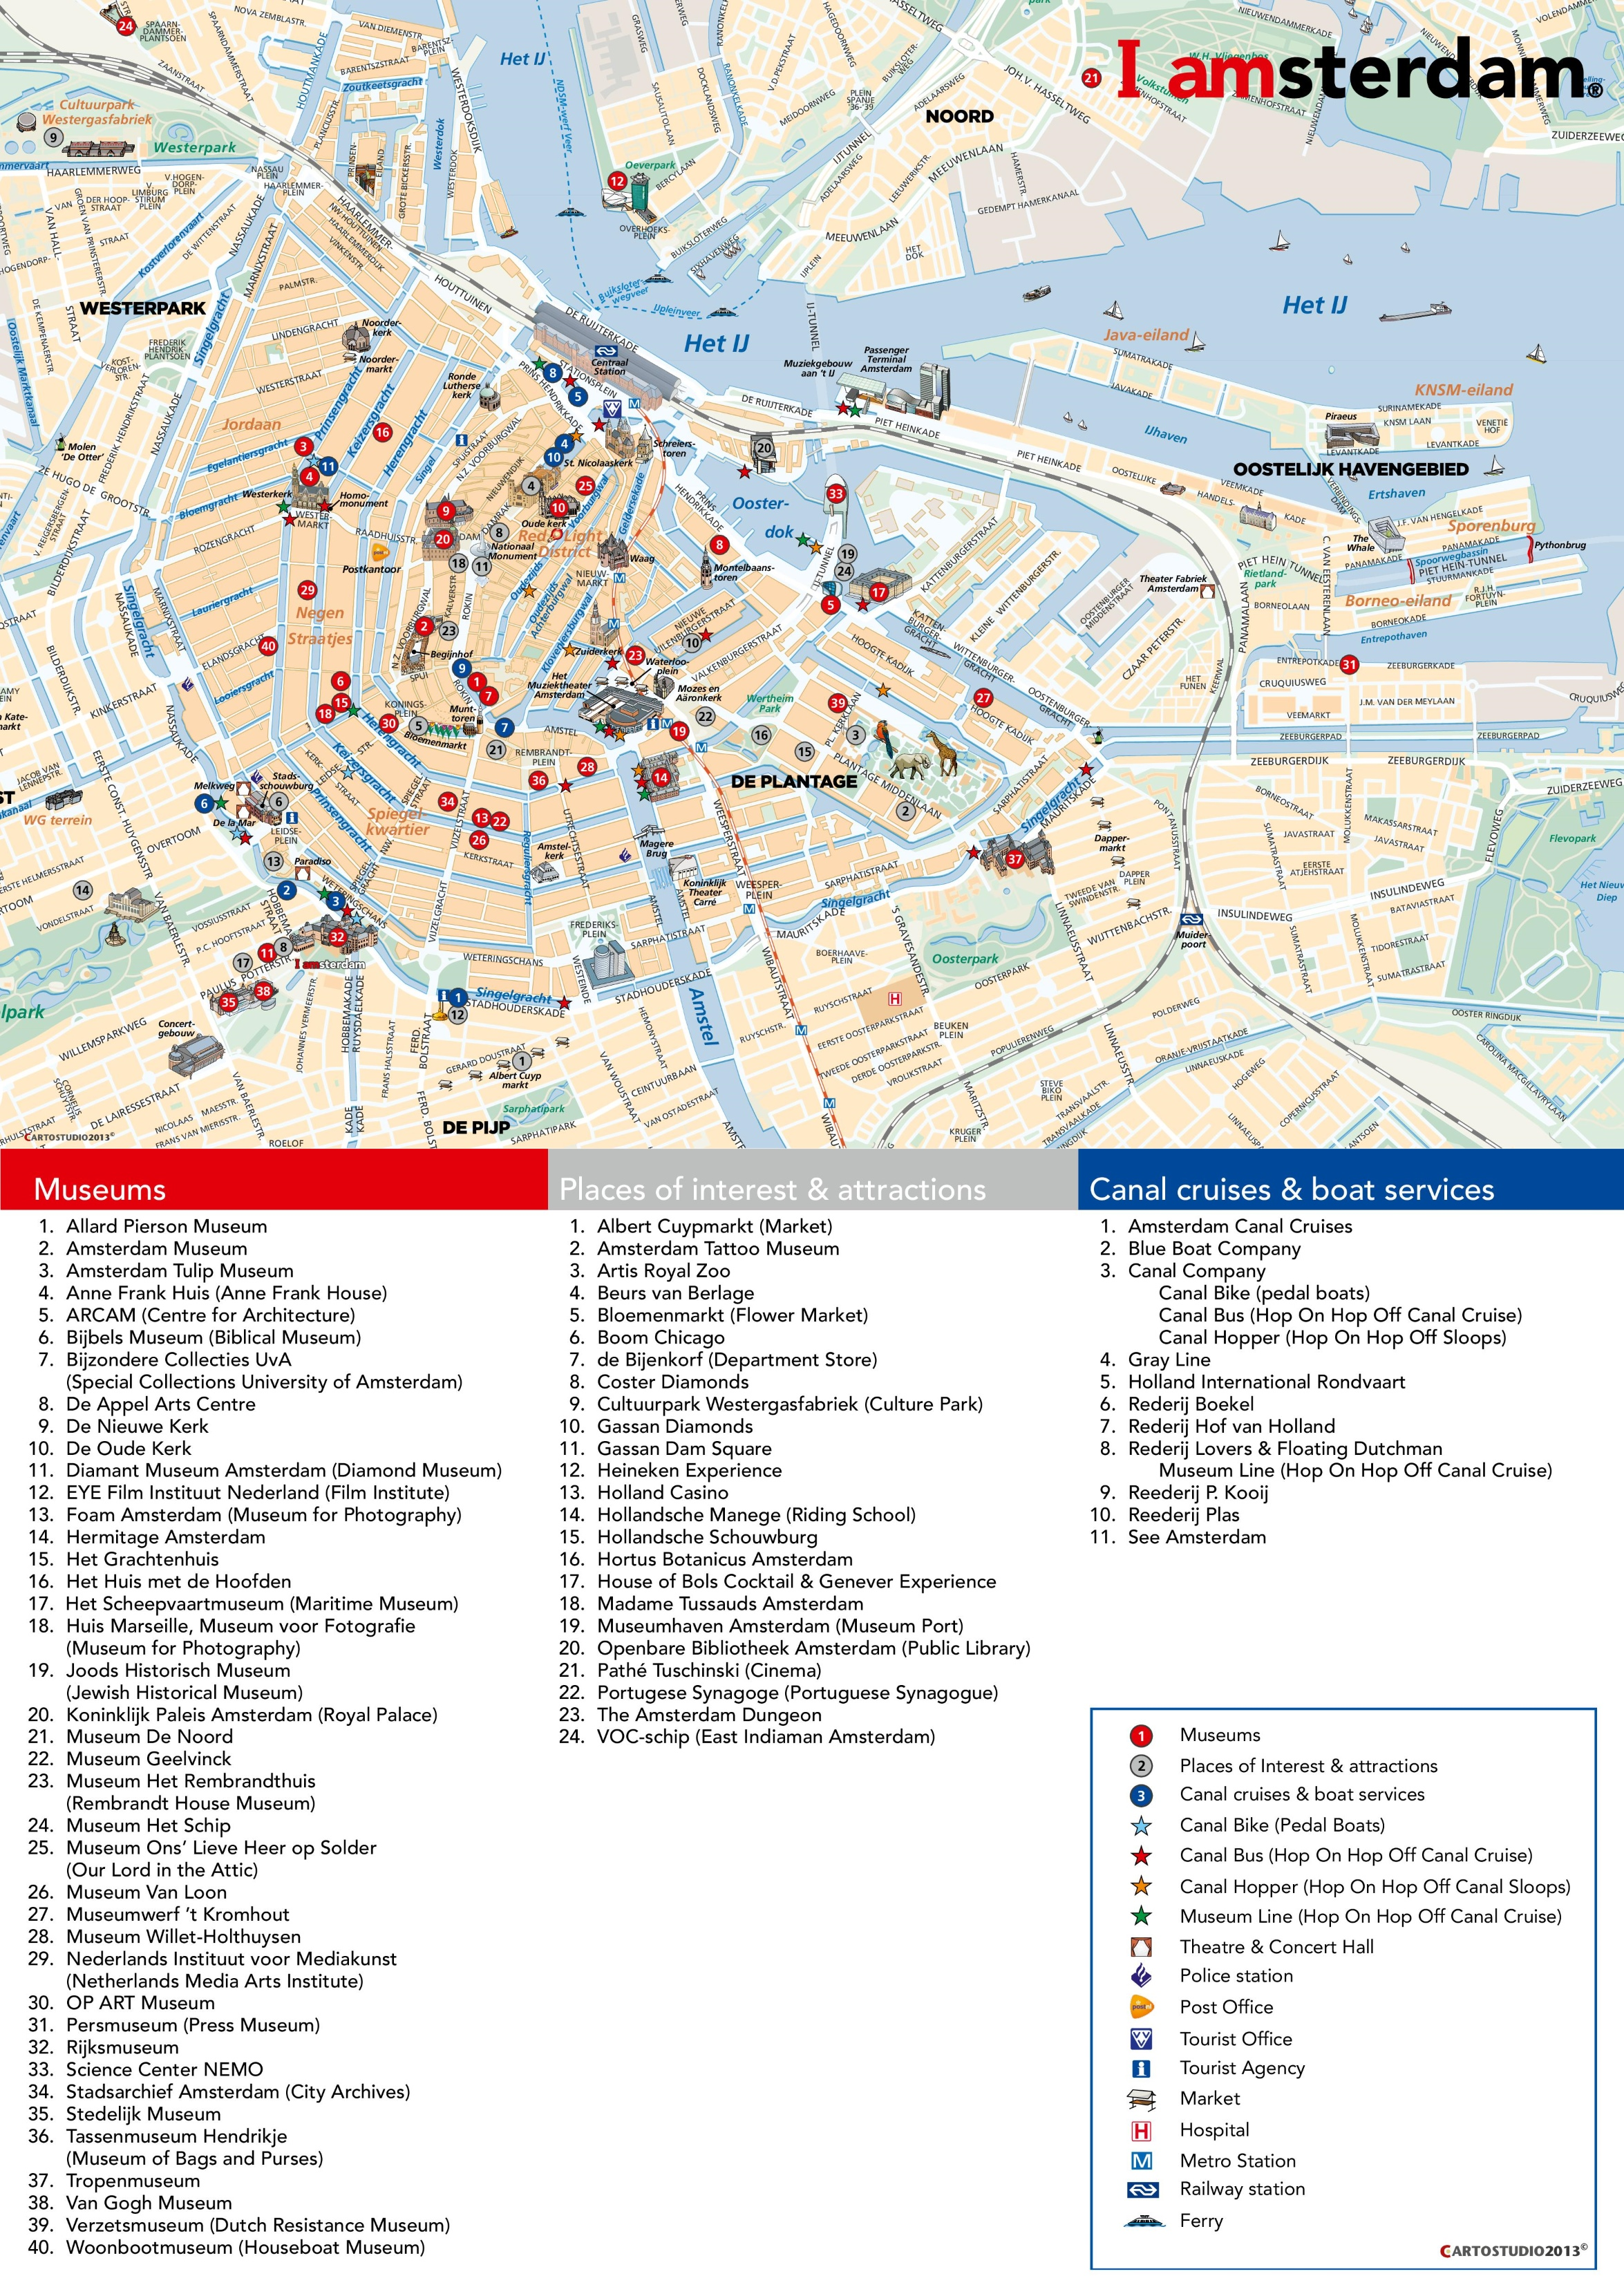 Amsterdam tourist attractions map – Amsterdam Tourist Attractions Map